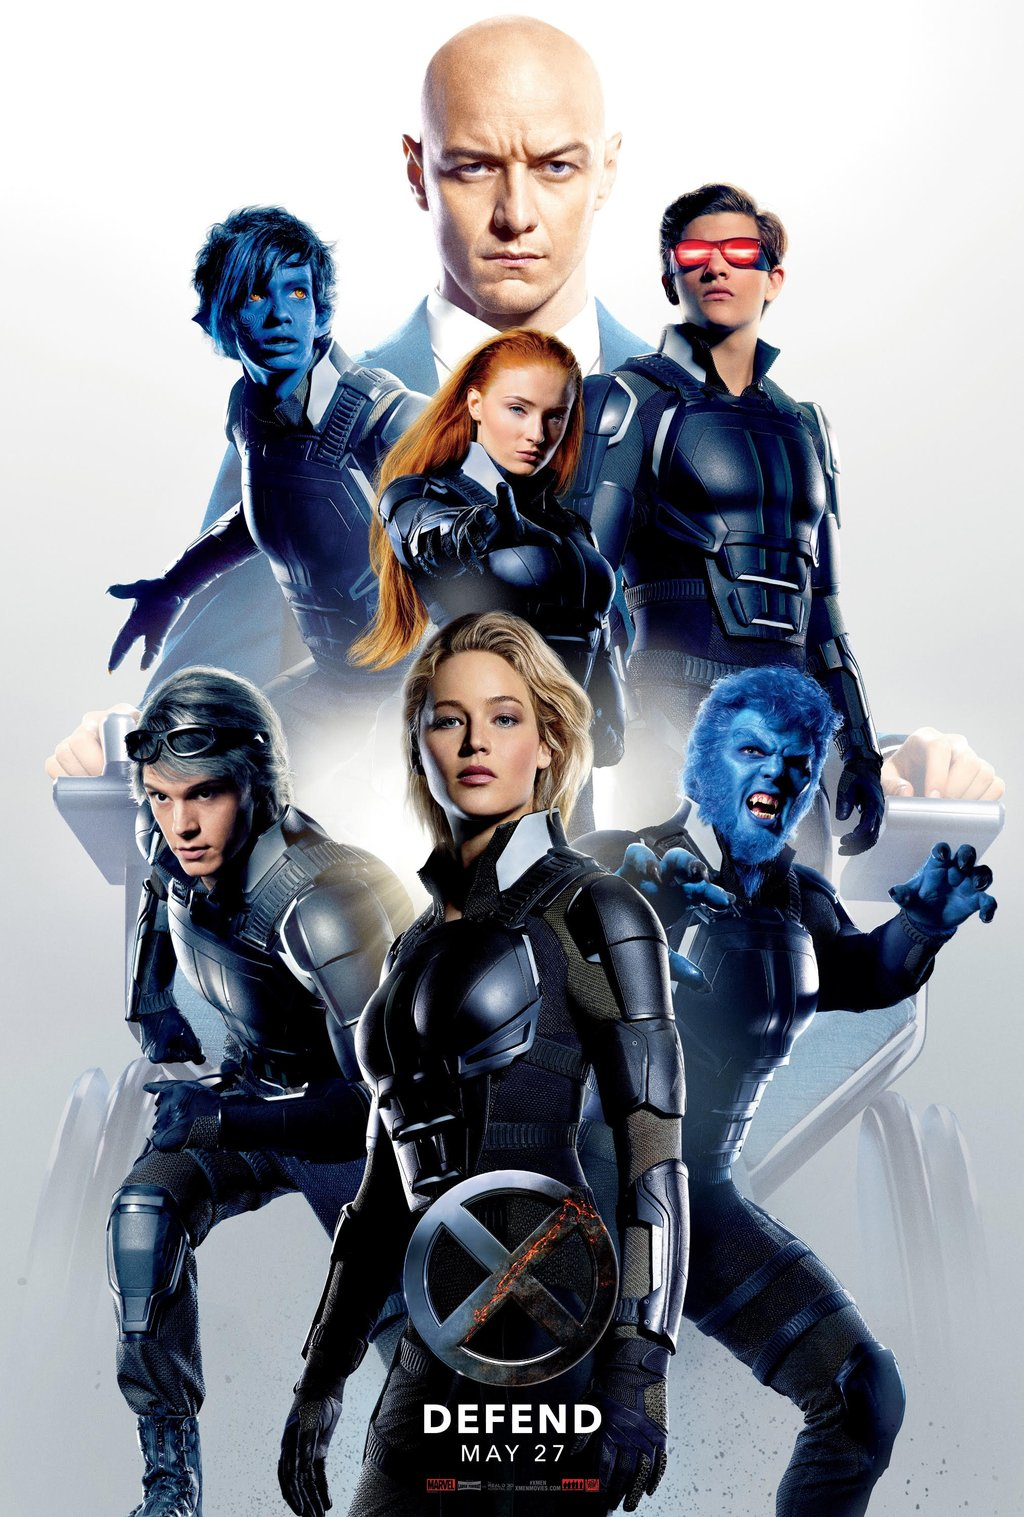 Defend - X-Men: Apocalypse - Poster